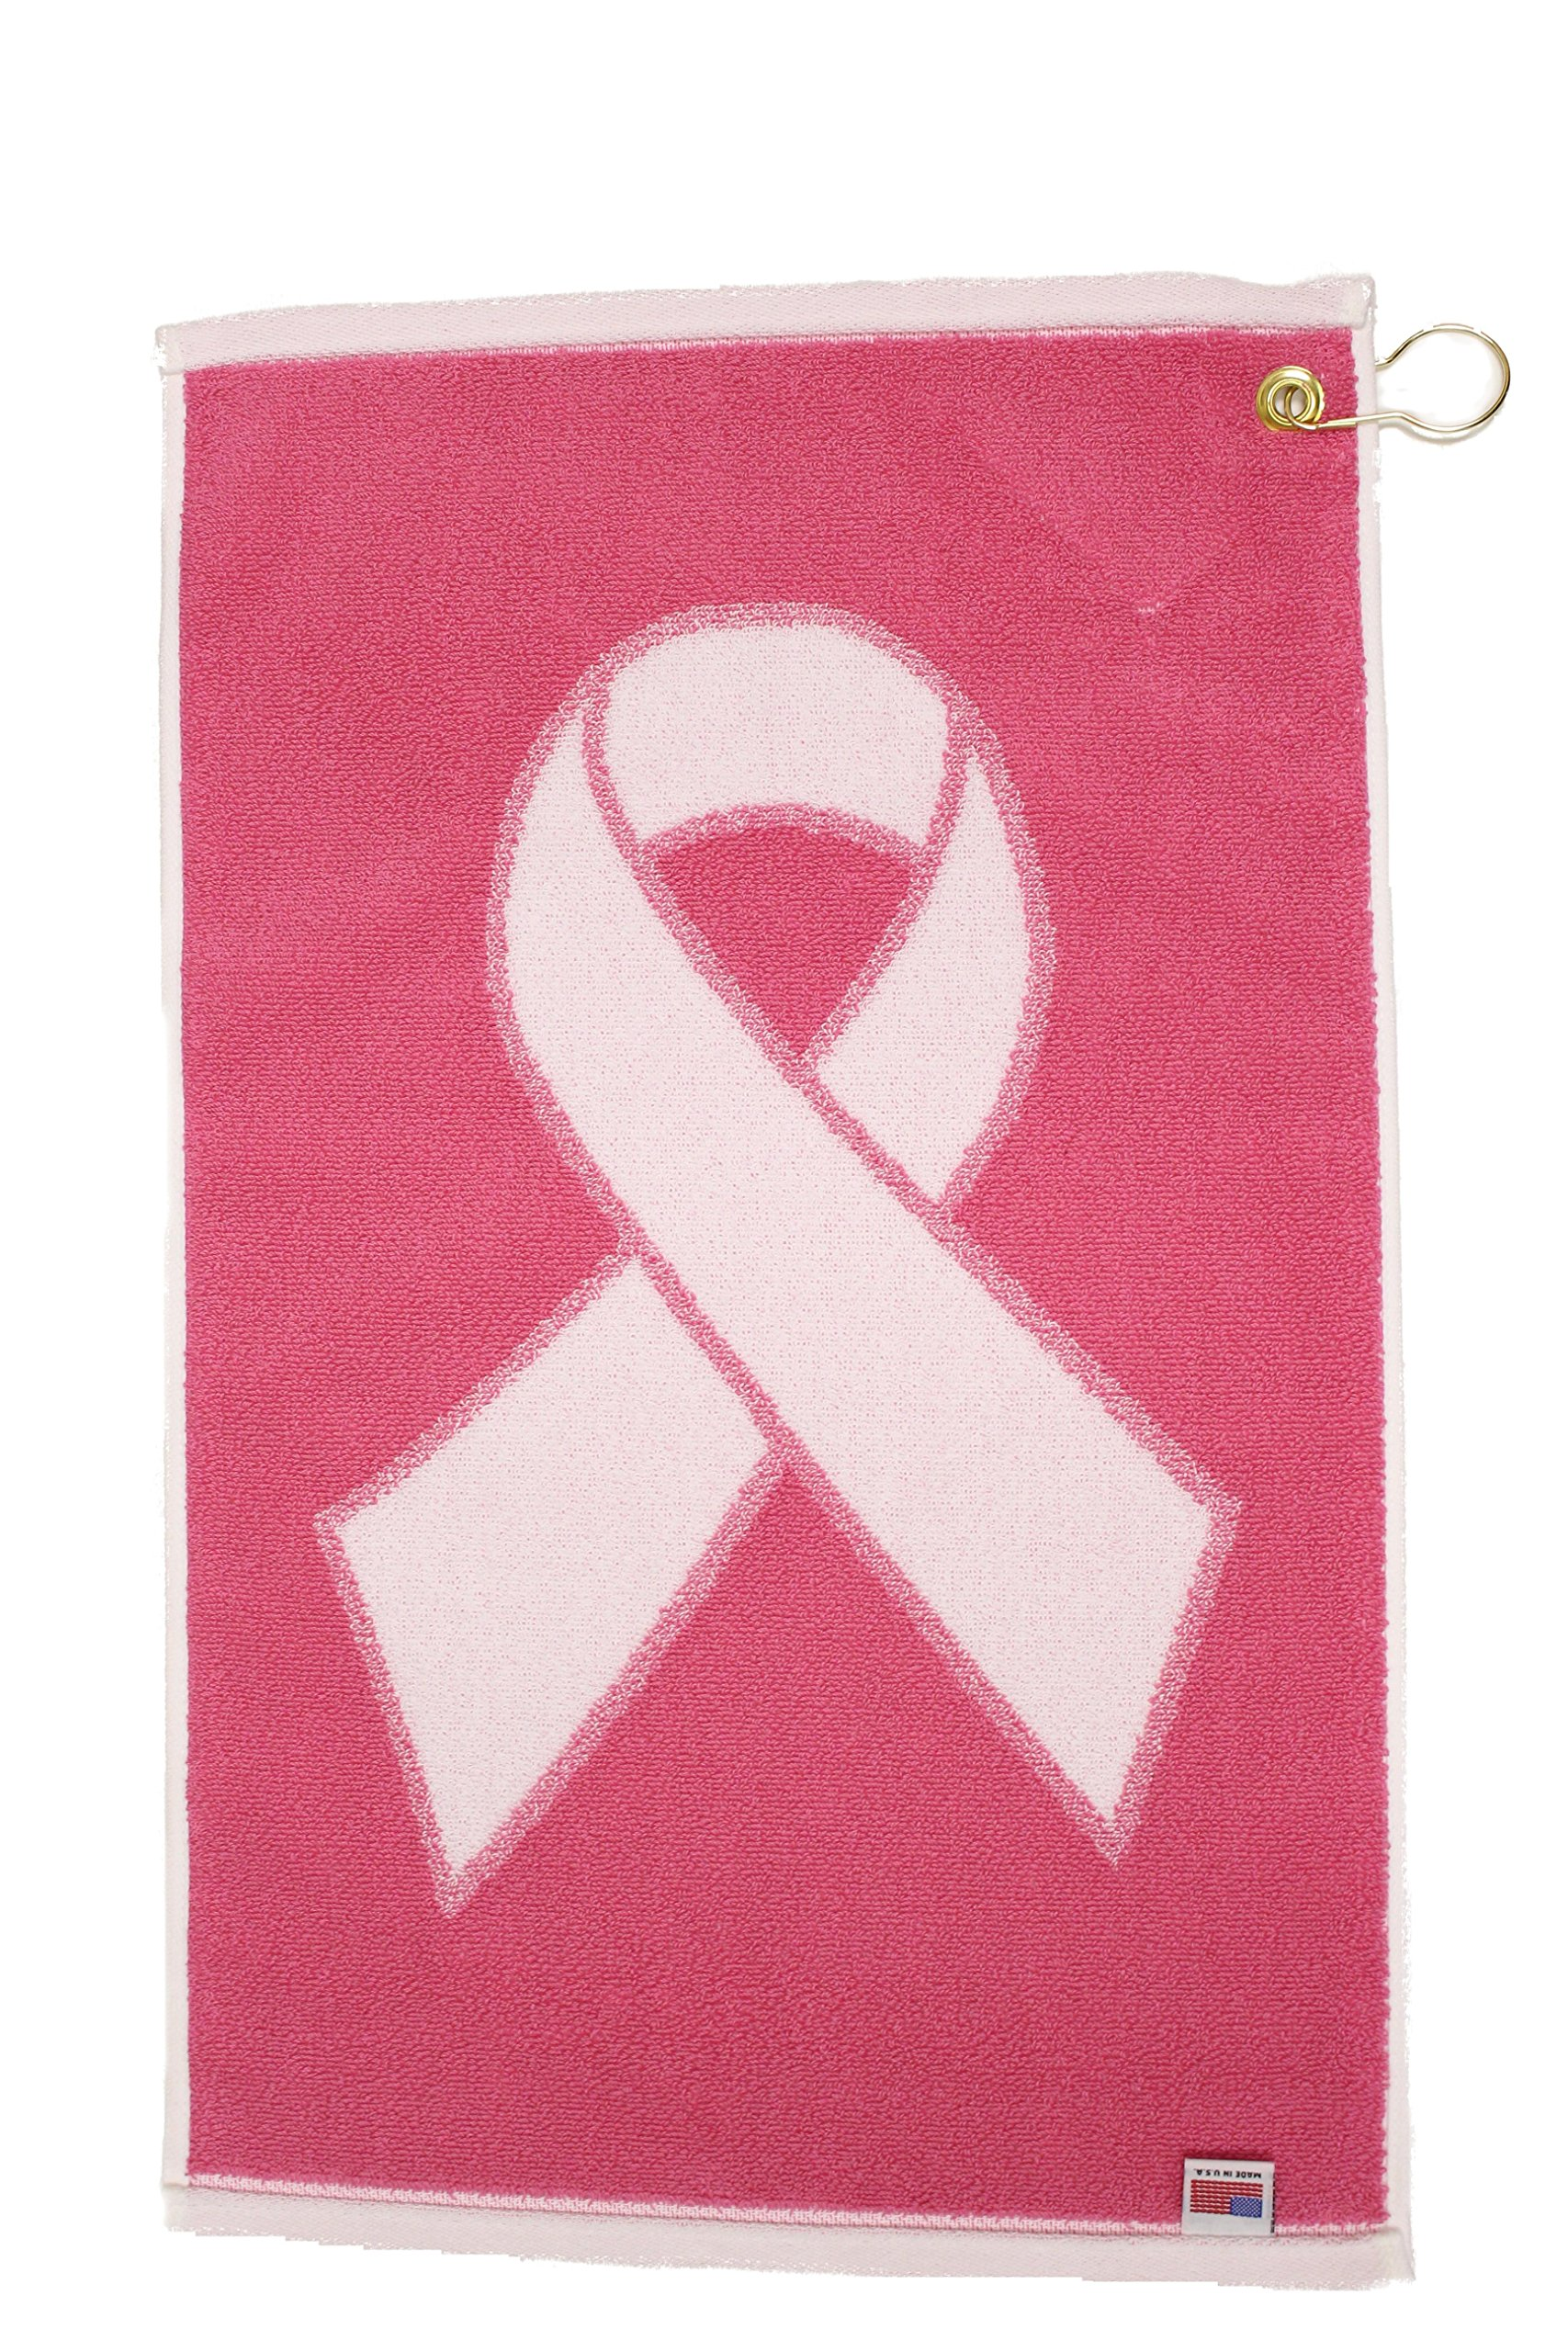 JP Lann Golf Pink Ribbon Breast Cancer Awareness Golf Towel, White/Pink, 16 x 24-Inch